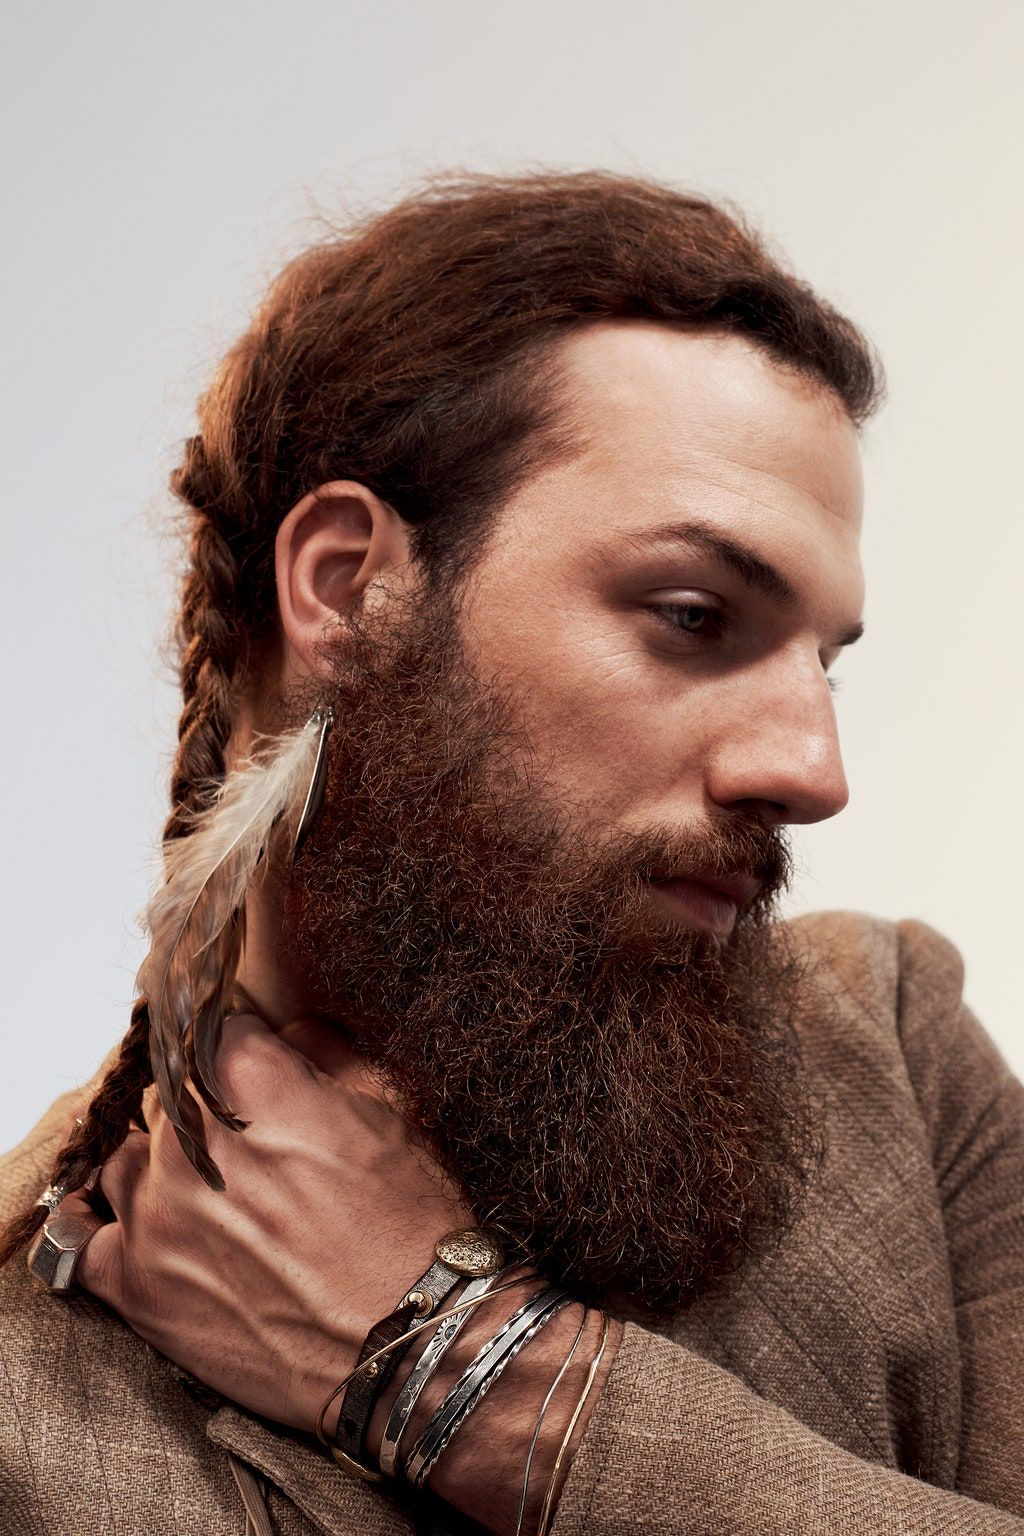 The Haircut Of The Summer Isn T What You Think In 2020 Long Hair Styles Men Mens Hairstyles Long Hair Styles